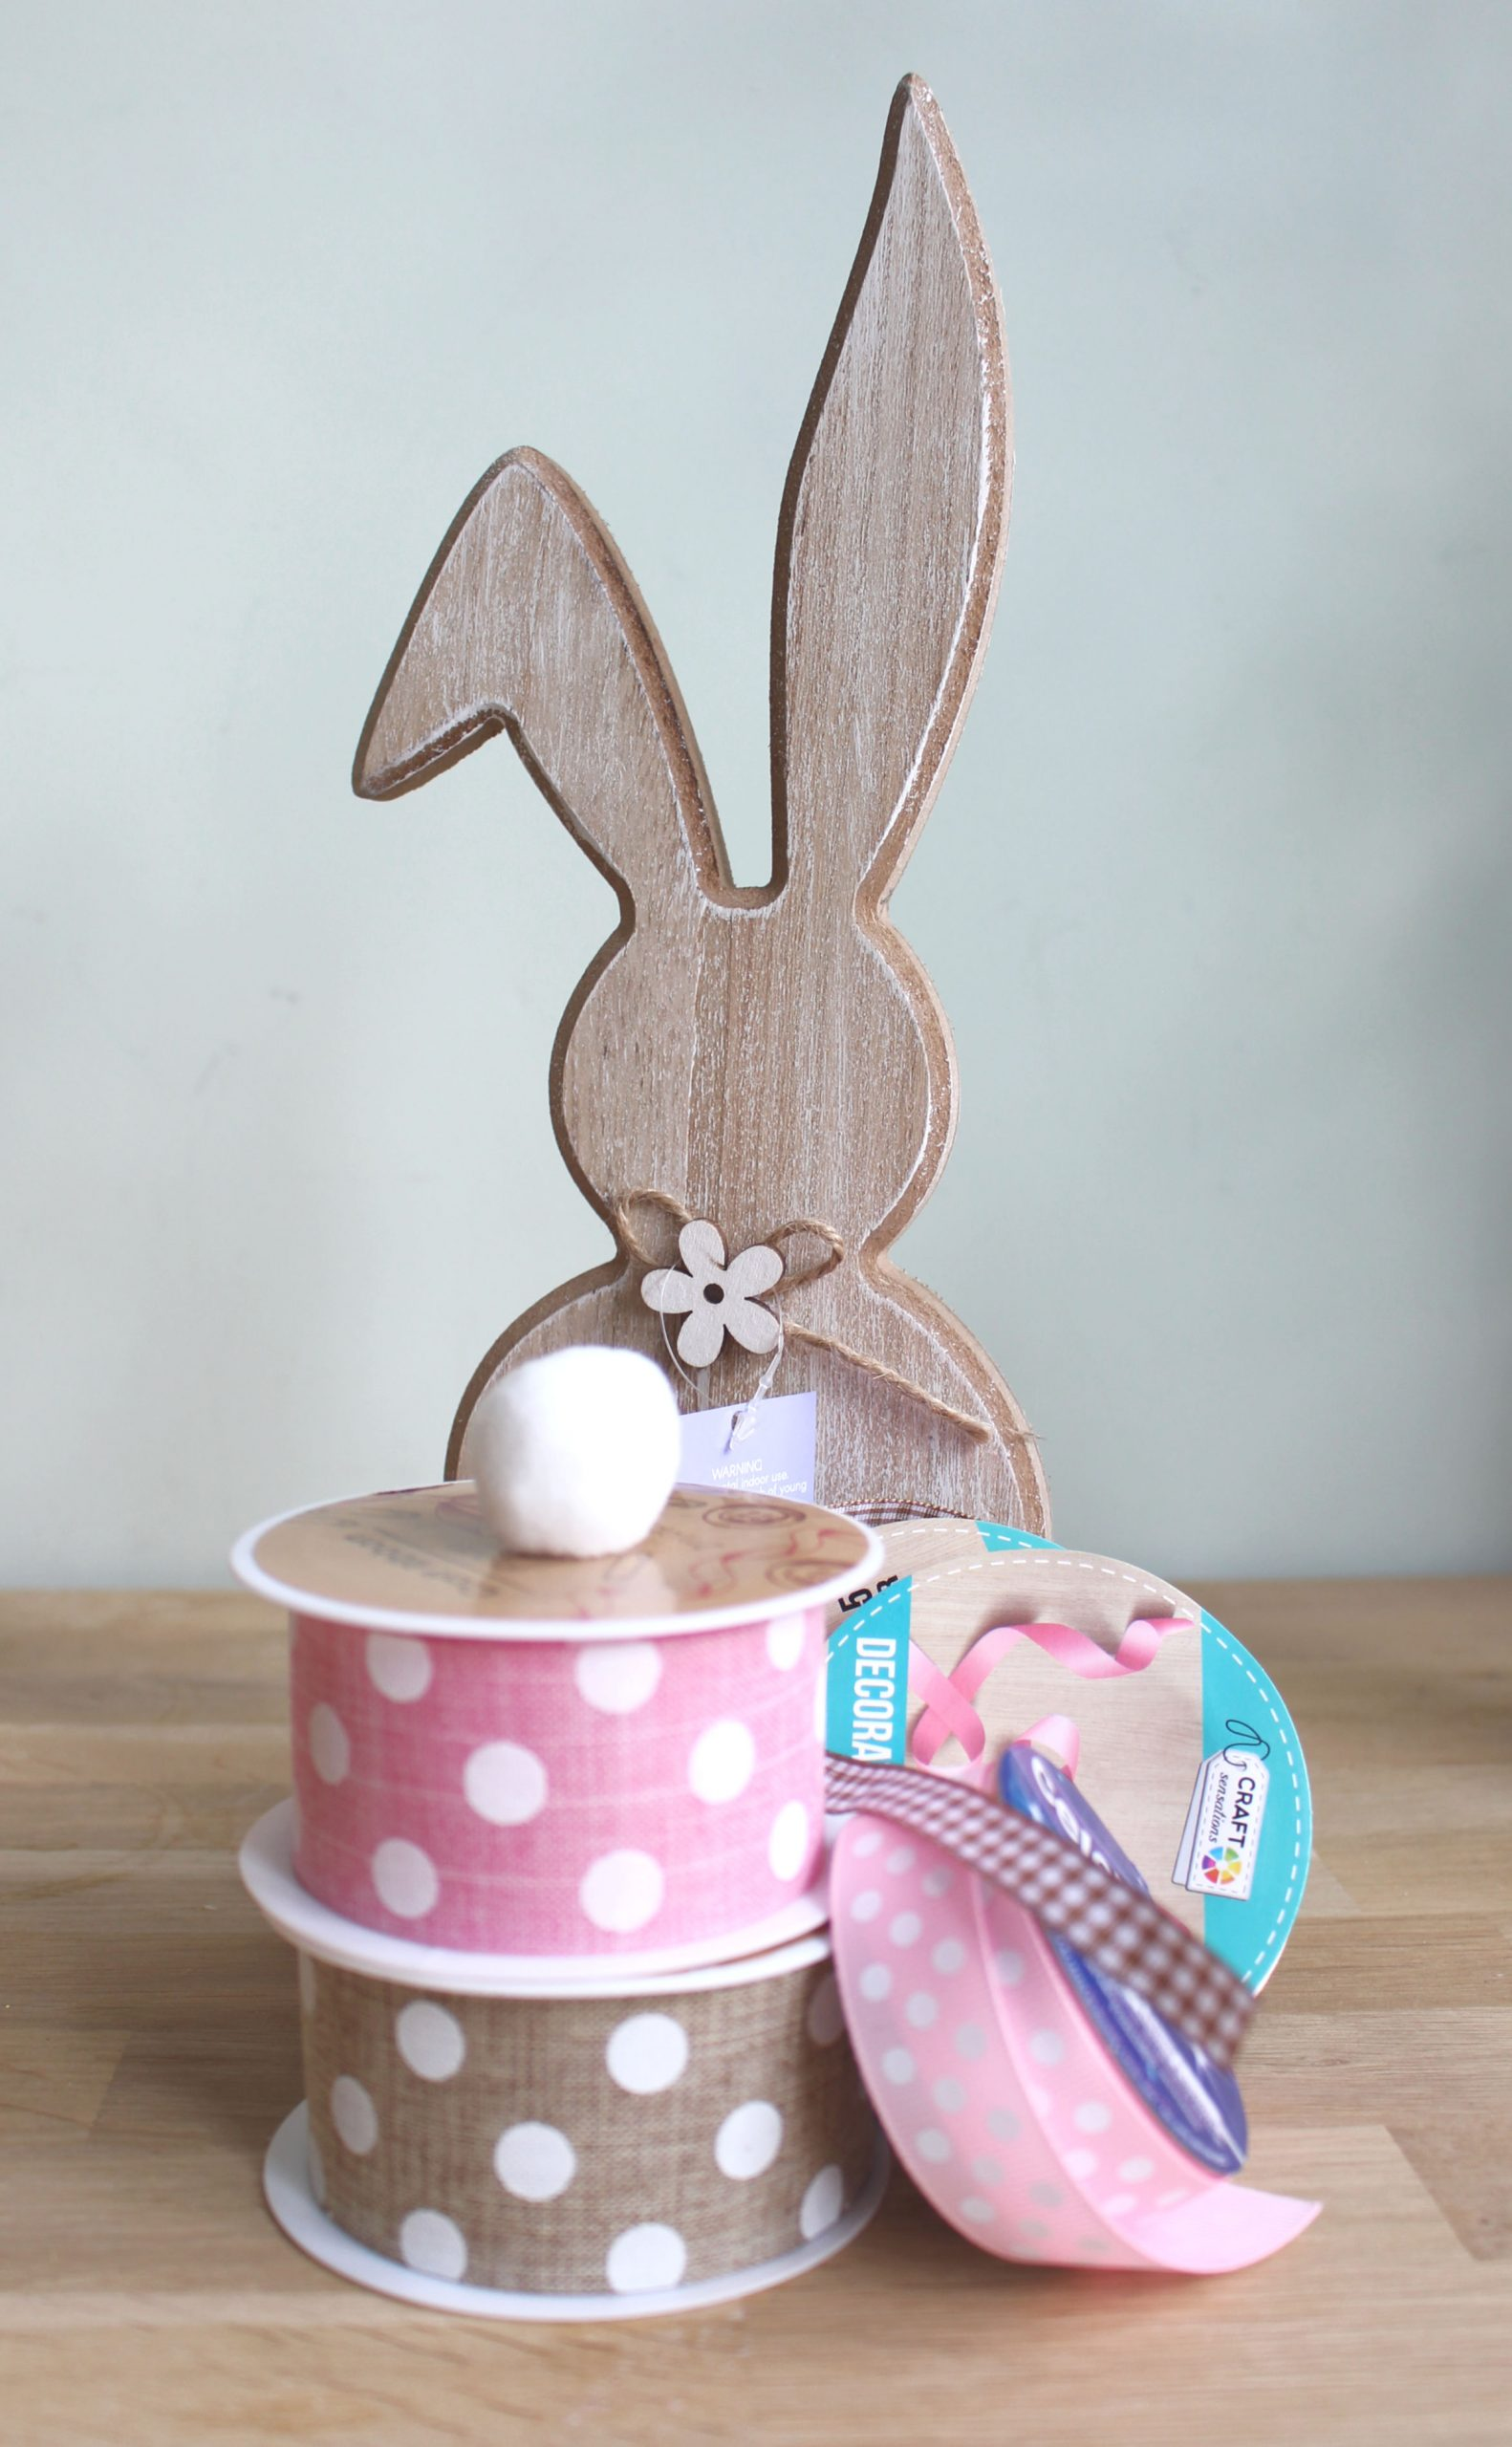 Shop bought Bunny Makeover